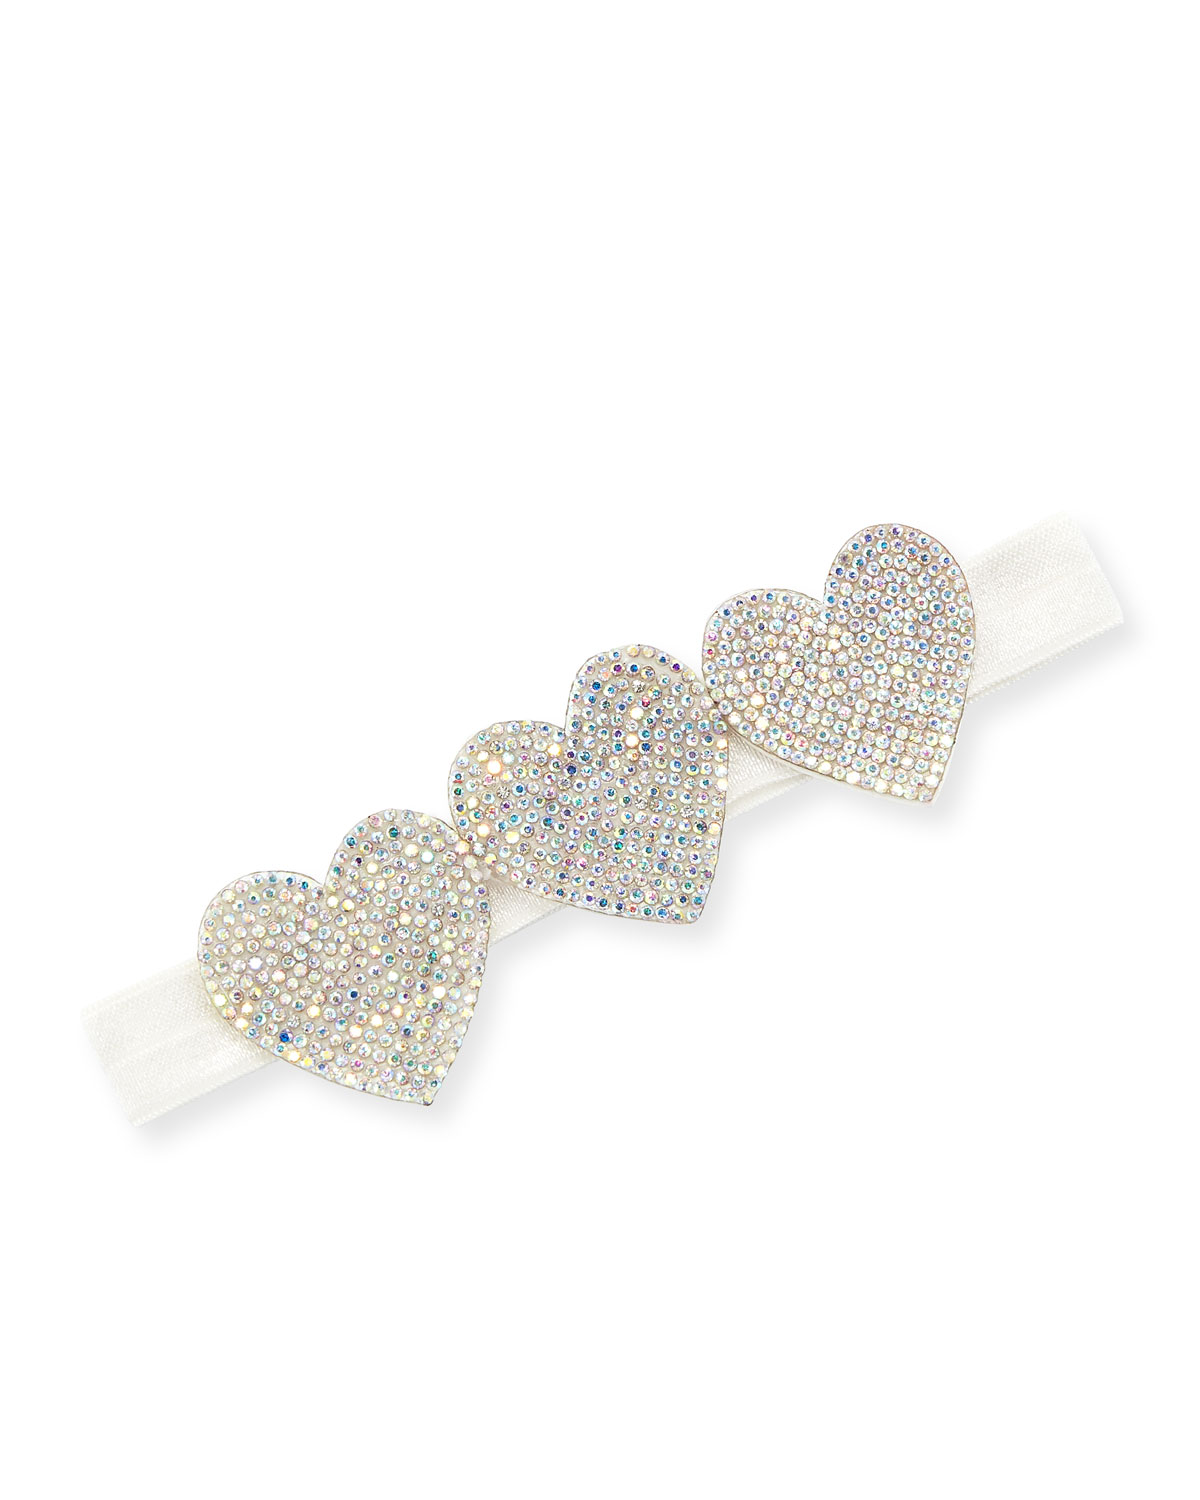 Bari Lynn Accessories Girls' Crystal Hearts Headband